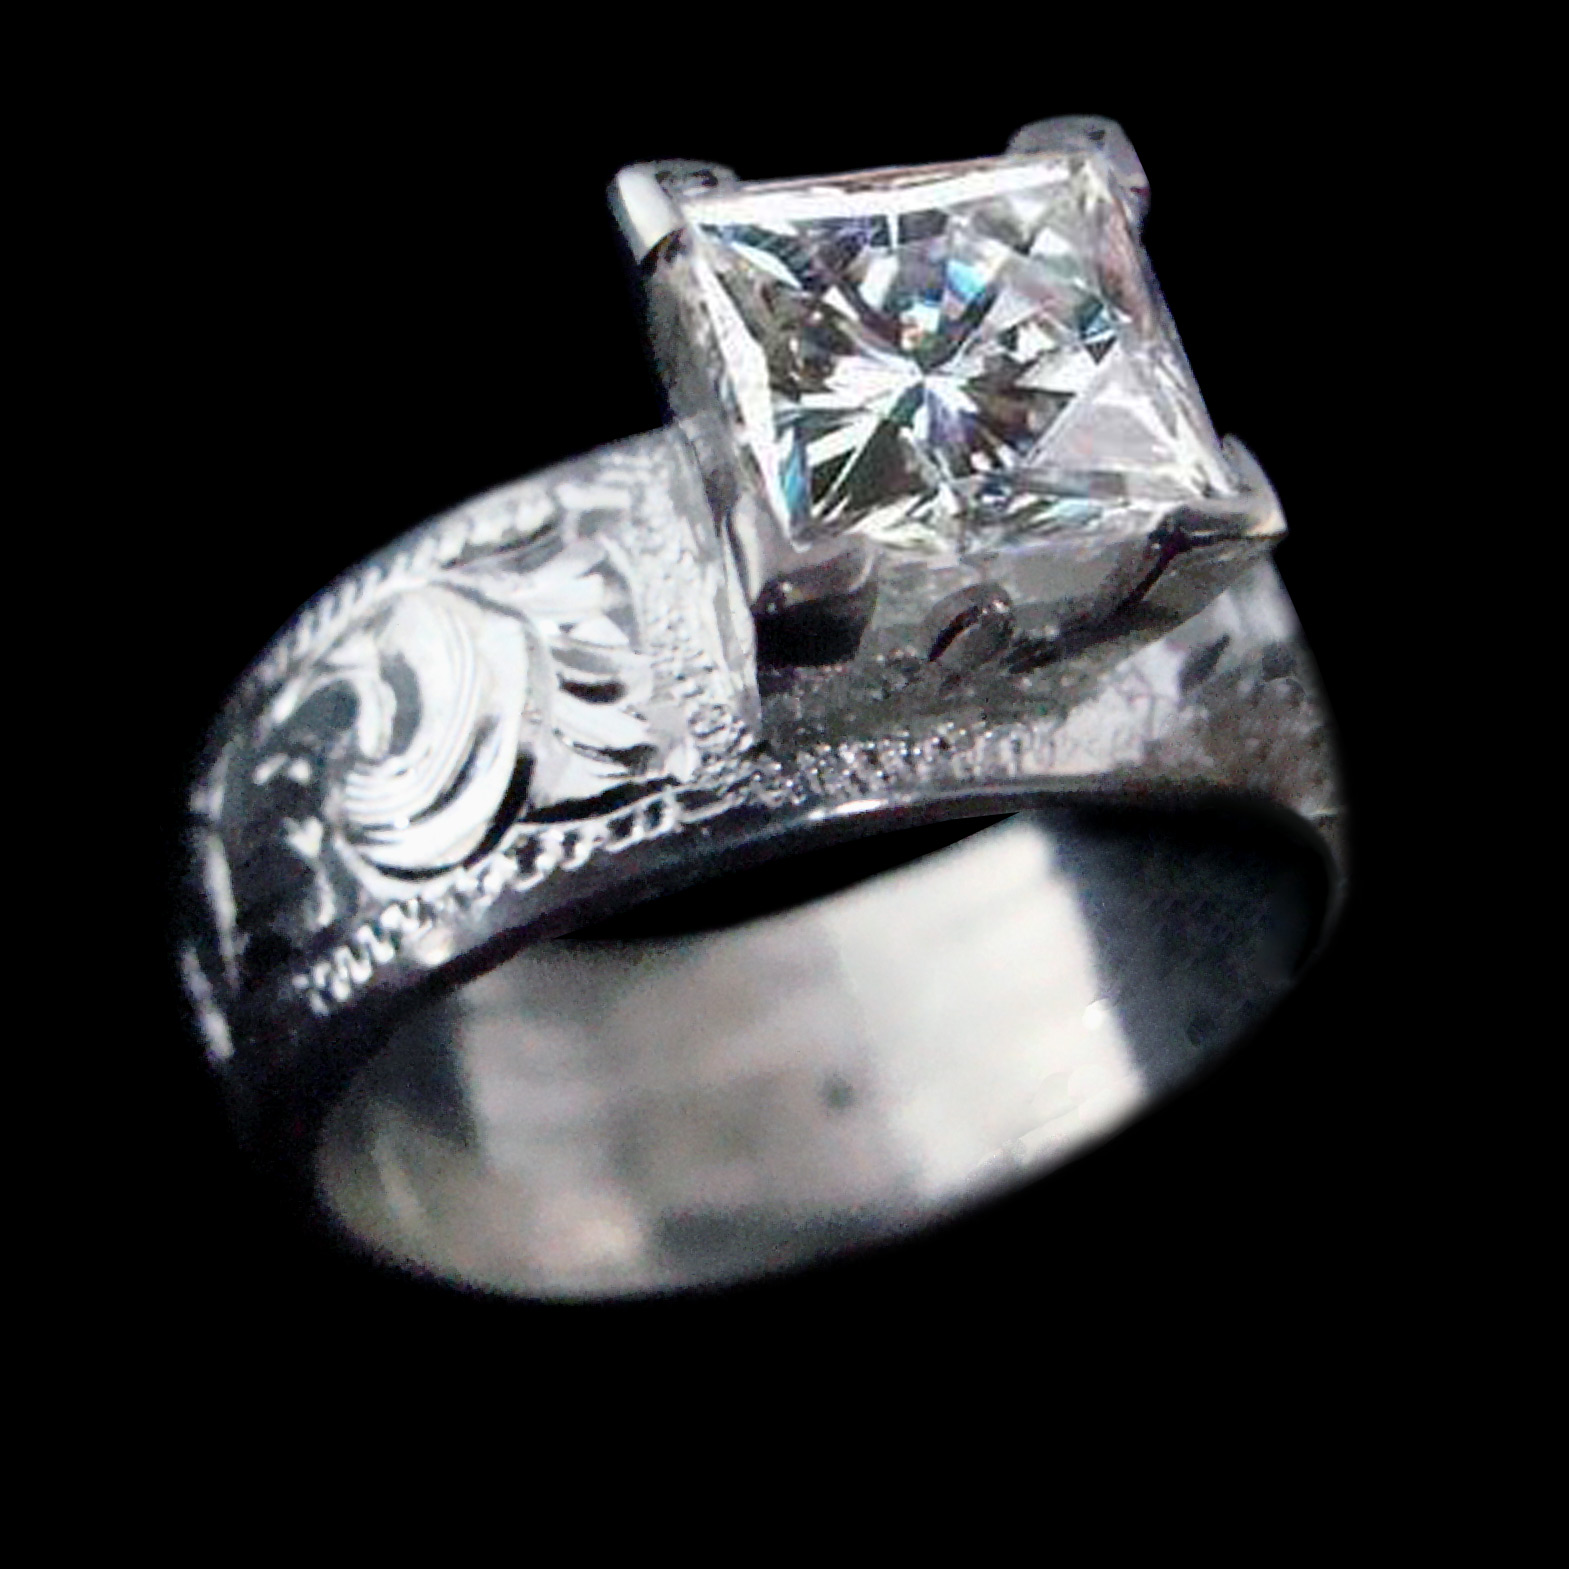 cowboy rings jewelry wedding com engagement htm cowboyjewelers